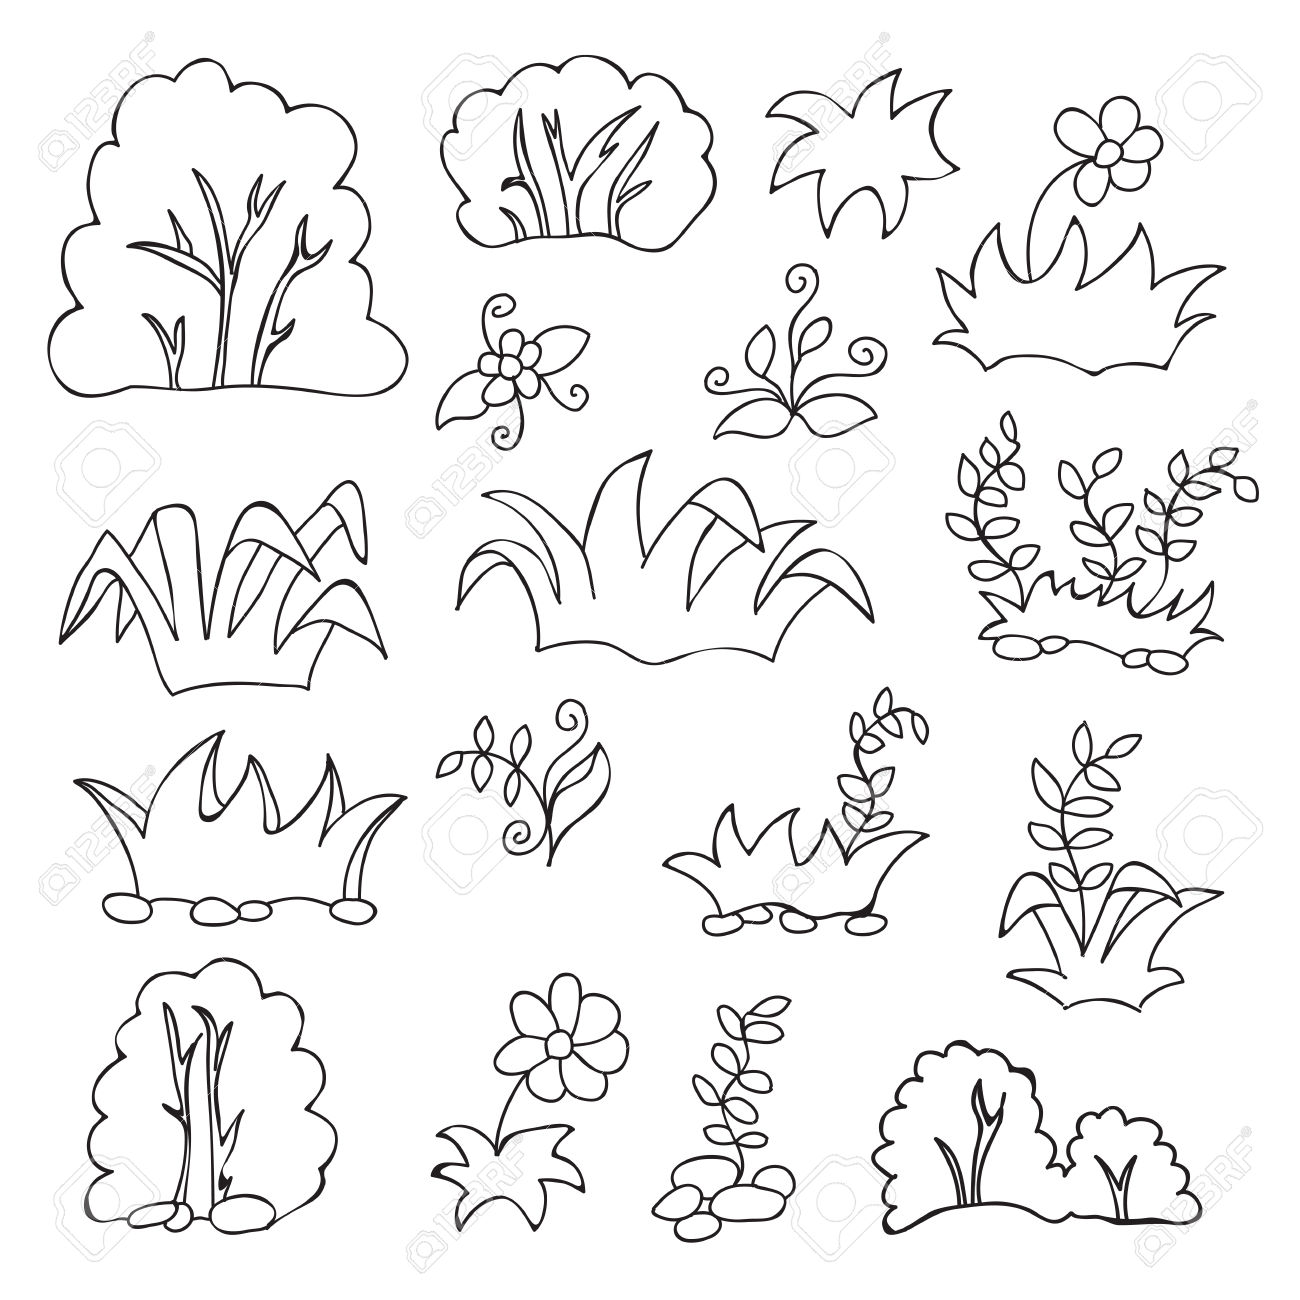 Coloring book grass in field clipart image royalty free library Coloring book grass in field clipart - ClipartFest image royalty free library